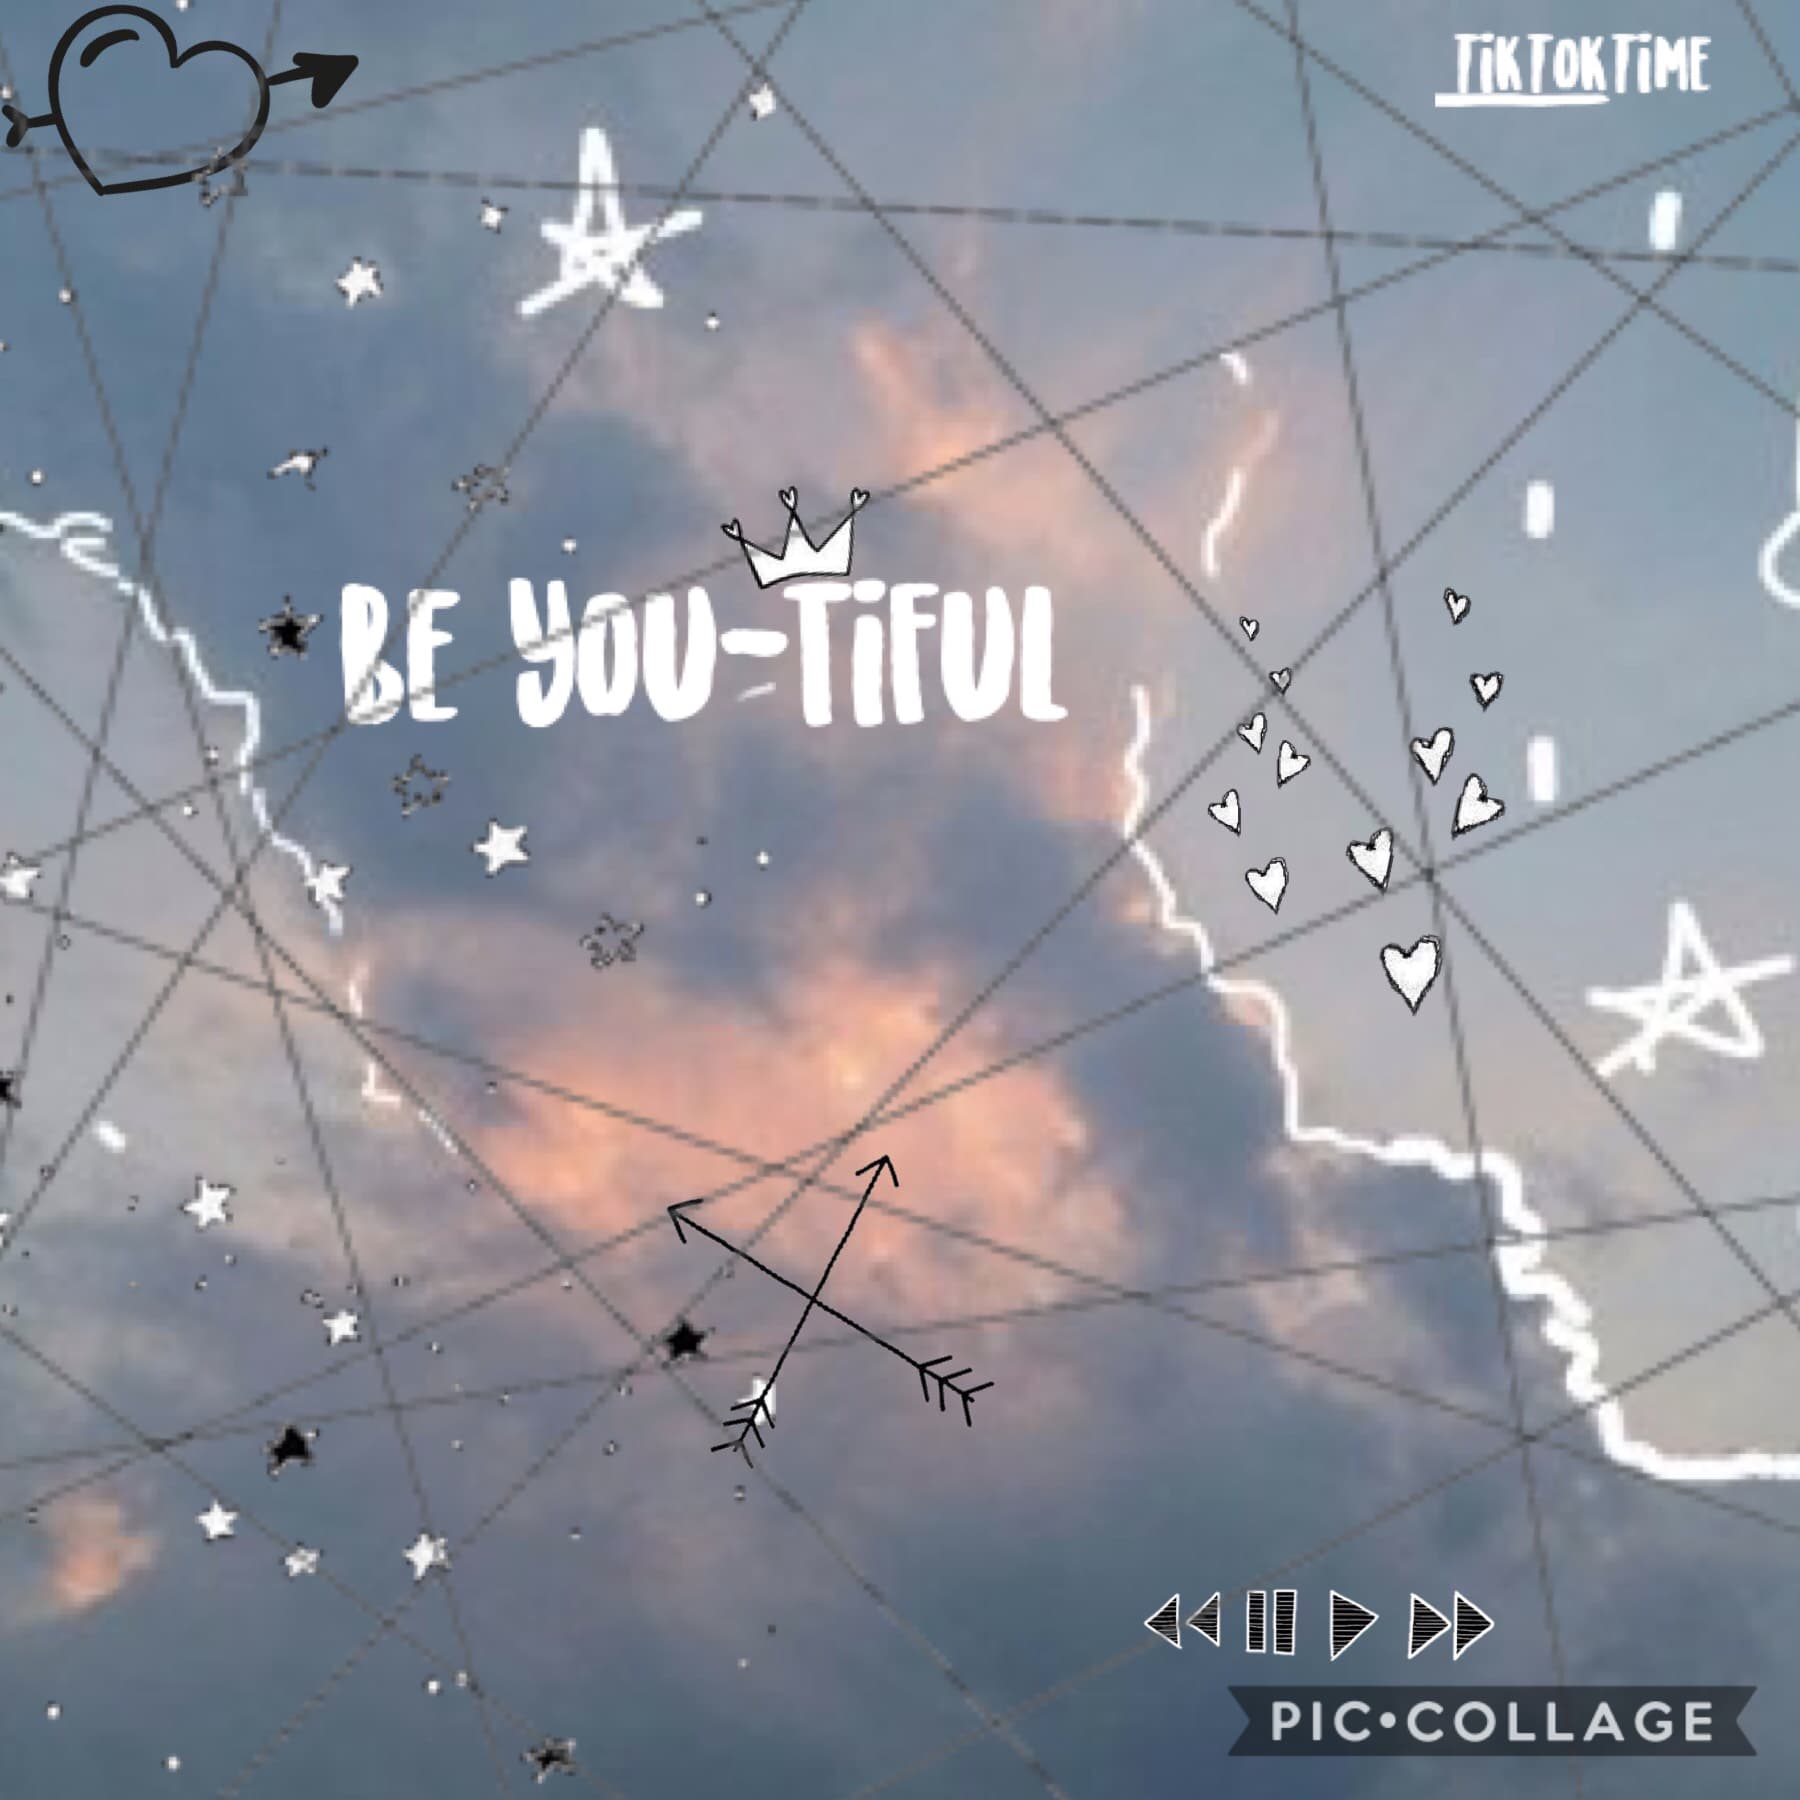 Get it? Be you-tiful? Instead of beautiful? GET IT? (what is my life?) ~ Tik Tok Time